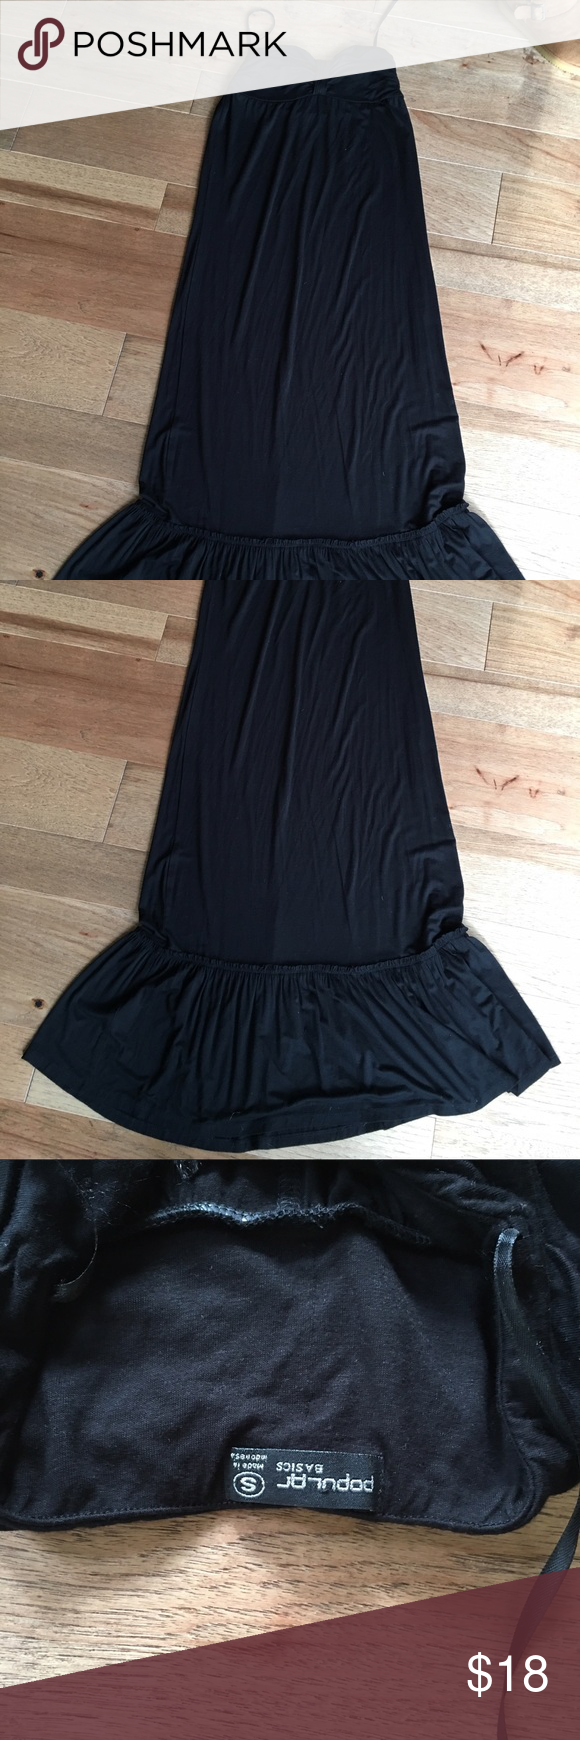 Long black strapless dress Never worn!  Too long for my taste but is soooo soft and comfy.  Strapless dress that goes to floor length.  Great for the beach or vacation:) Dresses Maxi